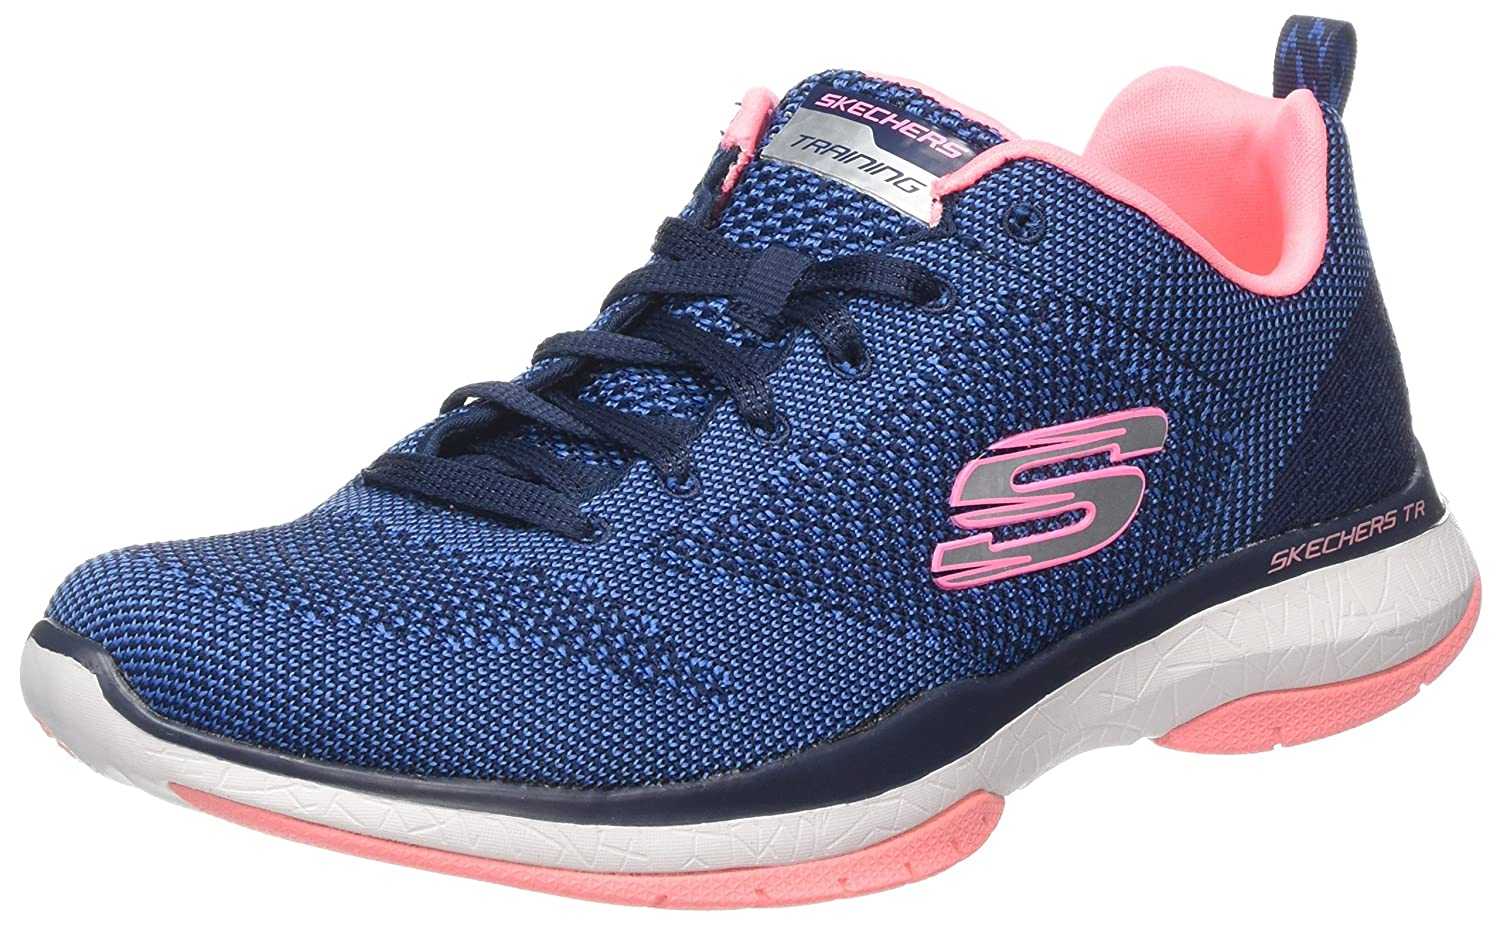 Skechers Burst TR-Close Knit, Zapatillas para Mujer: Amazon.es: Zapatos y complementos